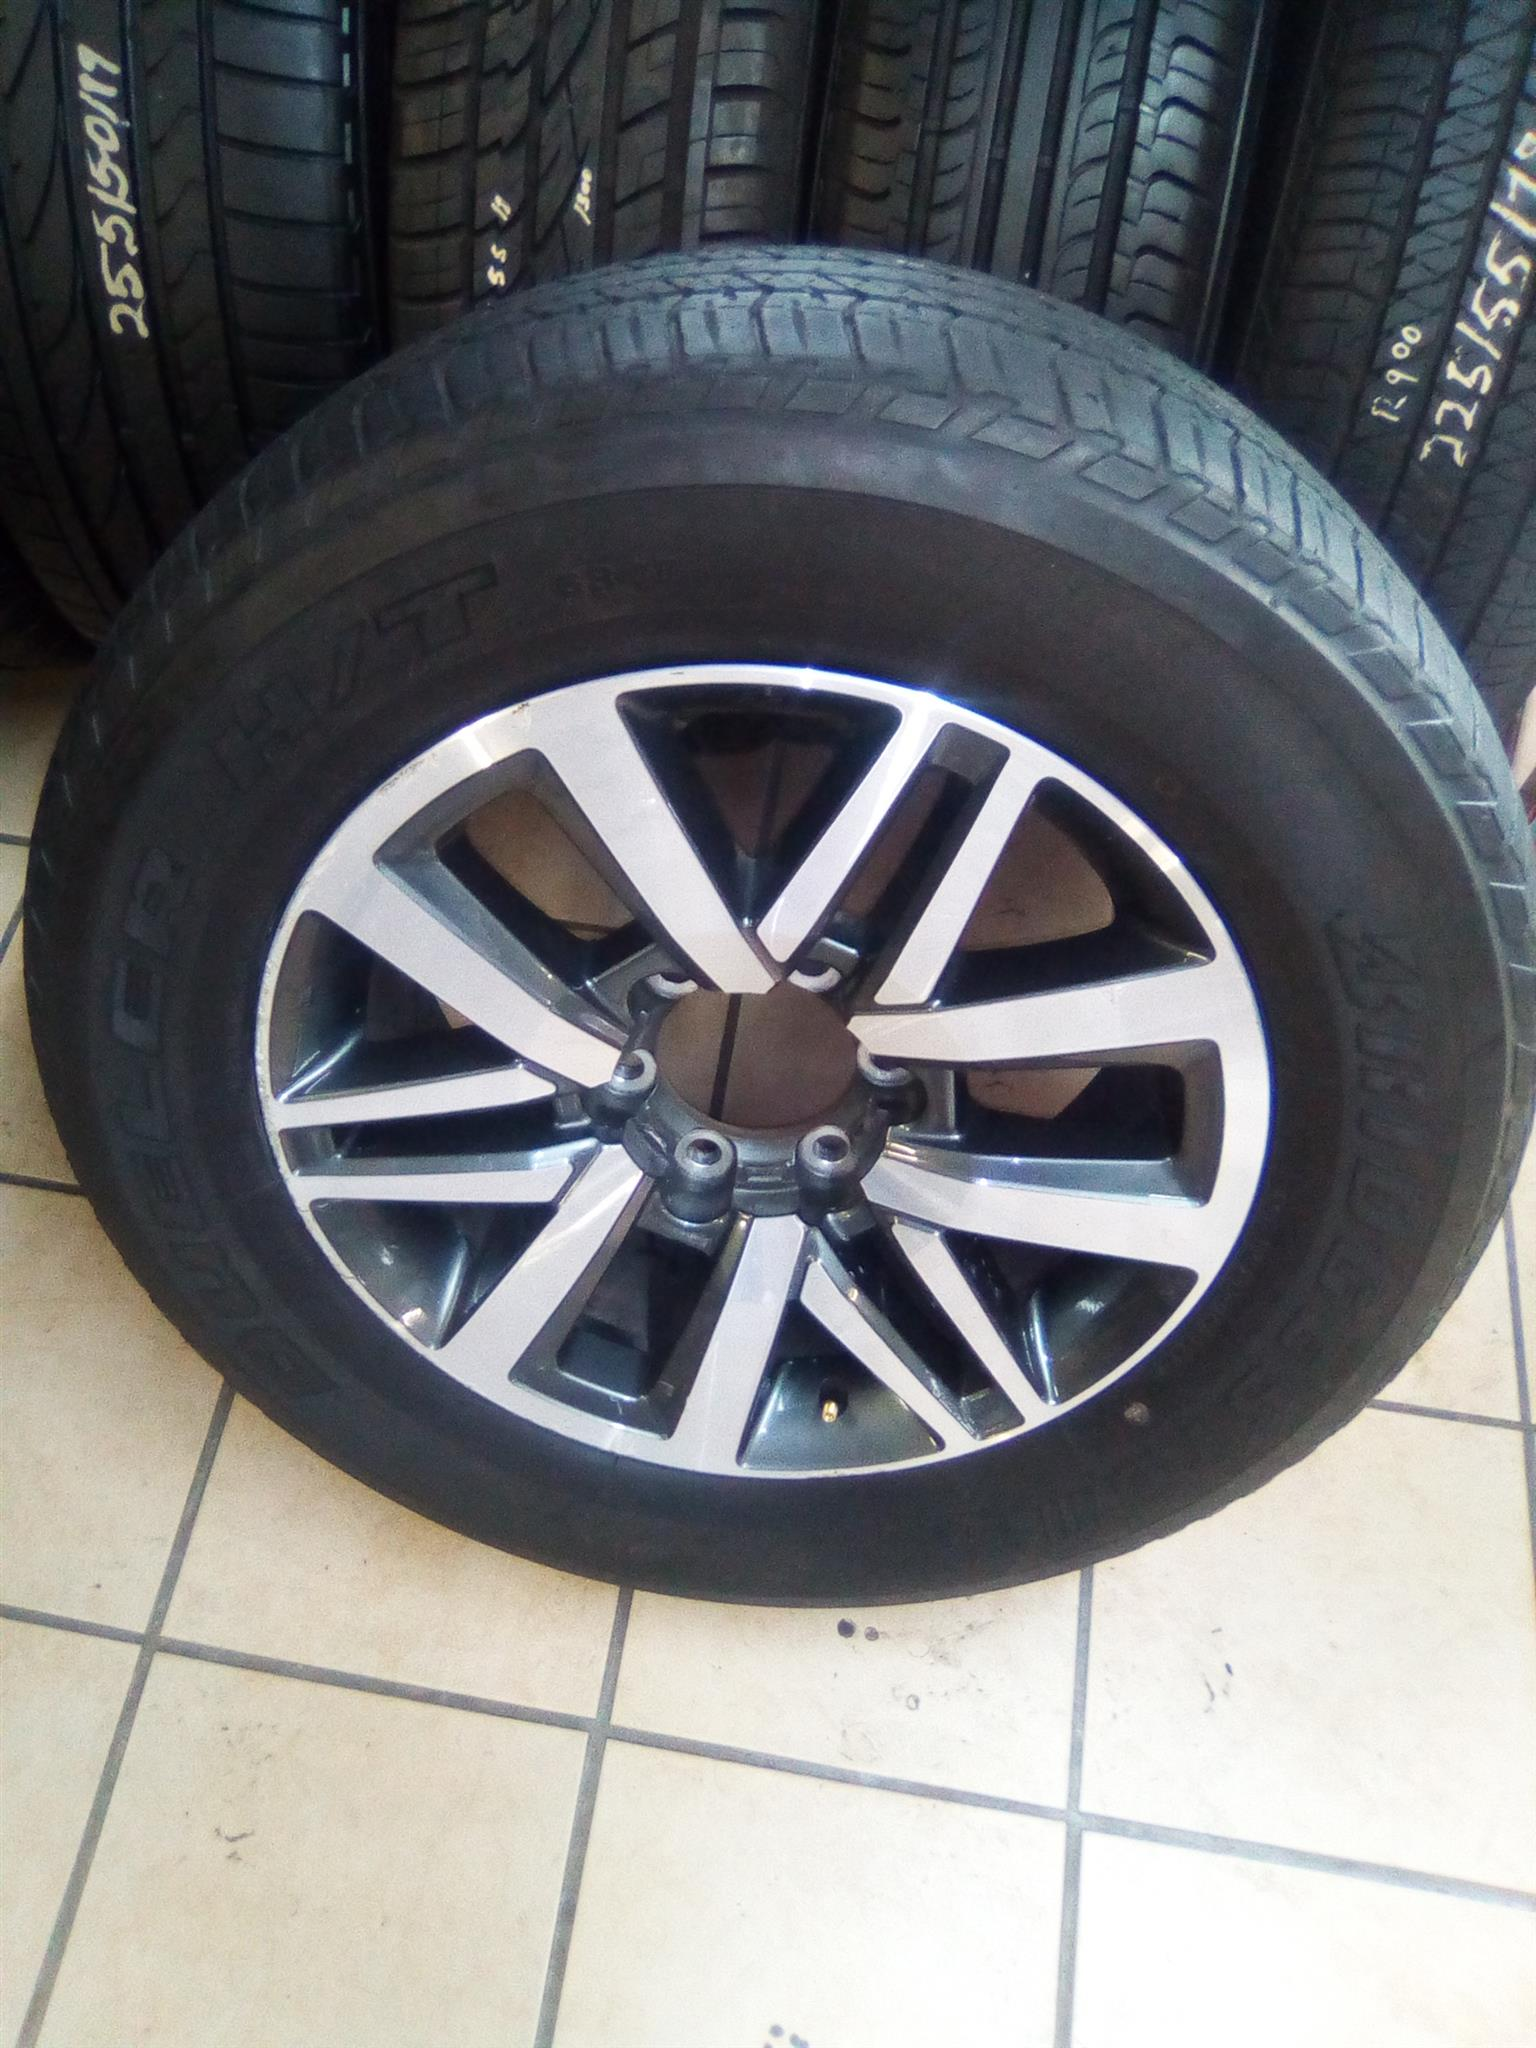 Nissan navara/fortuner 17 inch steel rims with a 265/65/17 dueler used tyres